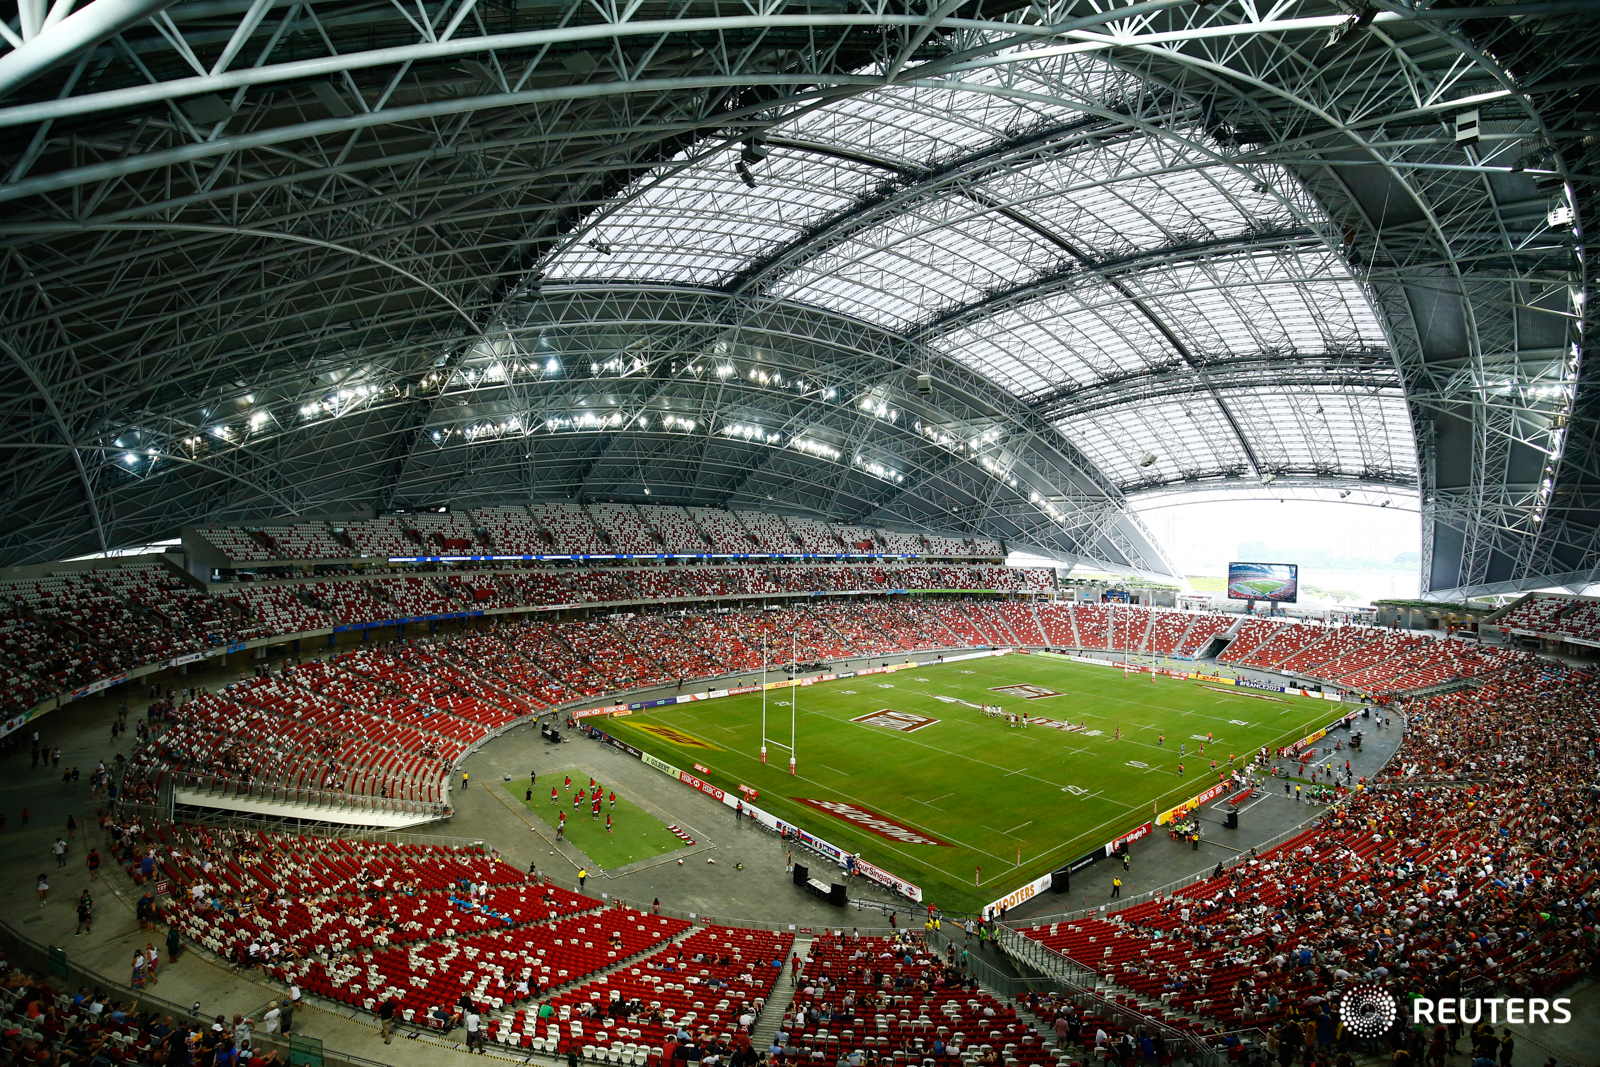 Rugby Union - Singapore Sevens - National Stadium, Singapore, 15/04/17 - A general view of the match between USA and Wales. REUTERS/Yong Teck Lim